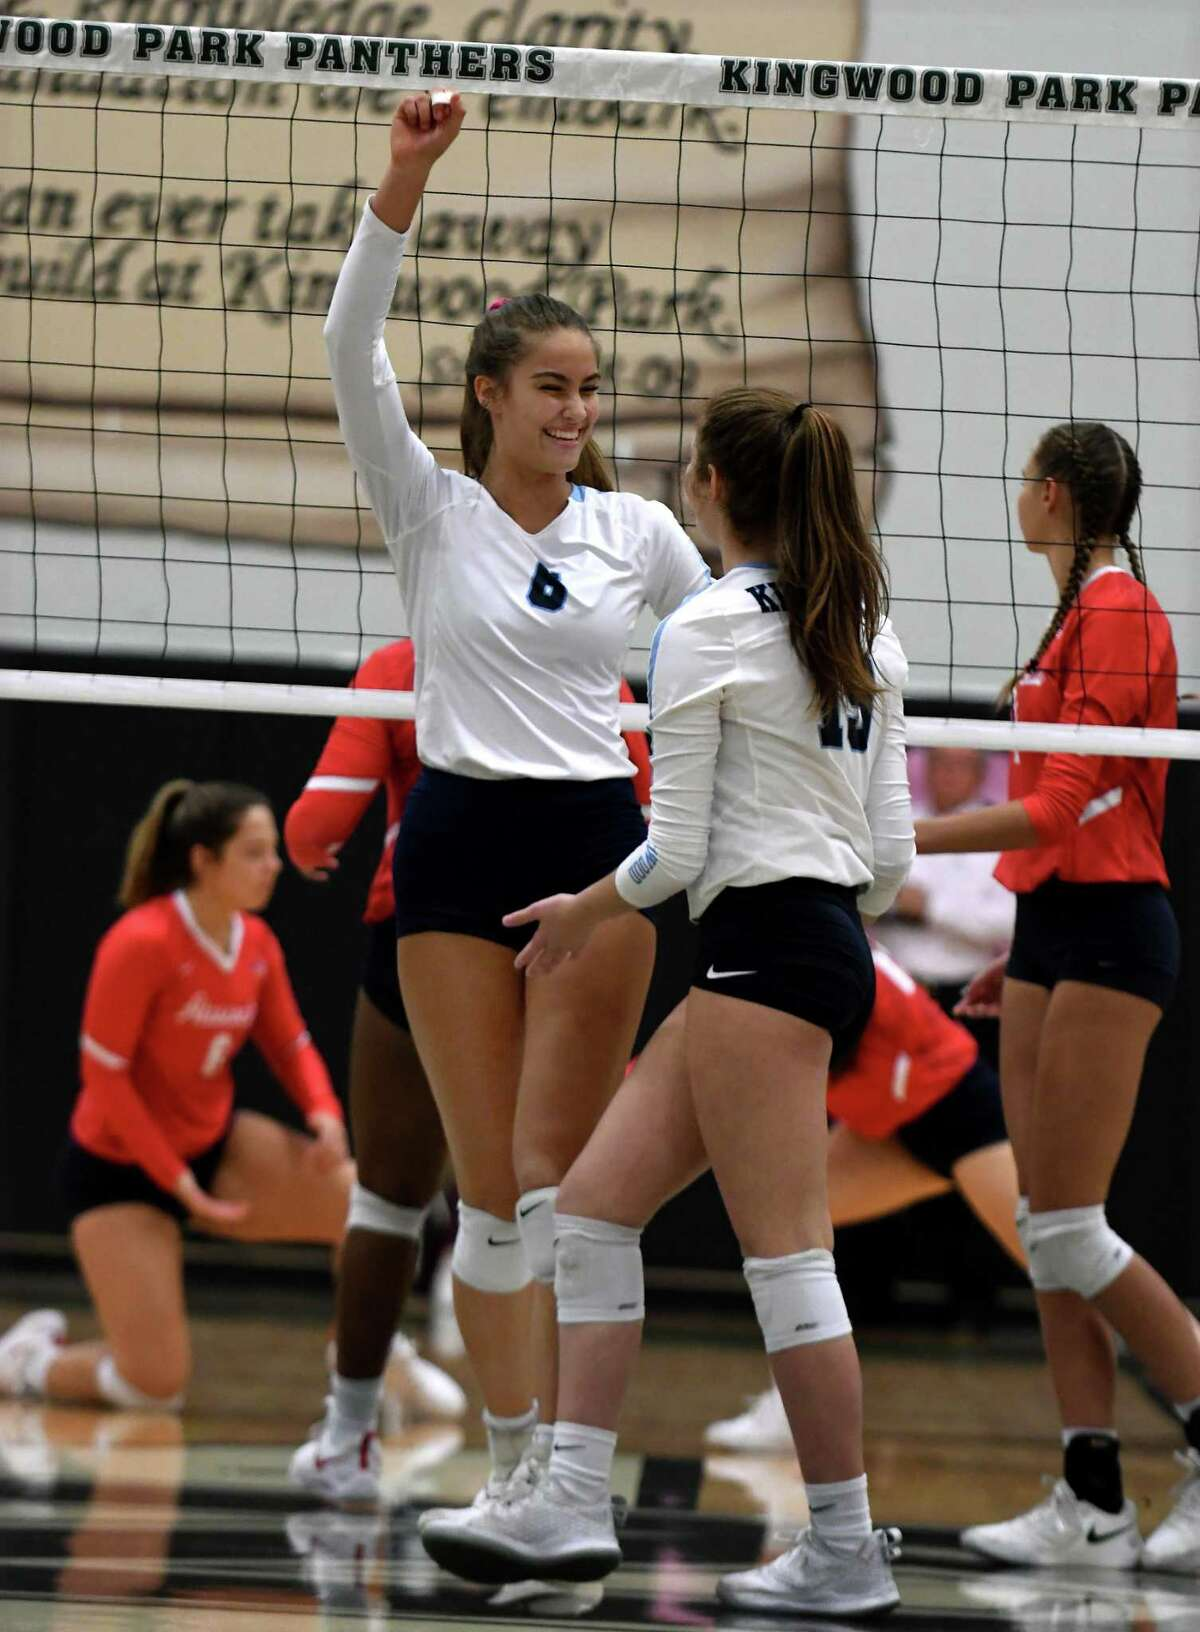 Kingwood sophomore middle blocker Sophie Ocampo, left, celebrates a point against Atascocita with teammate and sophomore setter Sydney Hicks during the first set of their District 22-6A matchup at Kingwood Park High School on Oct. 1, 2019.